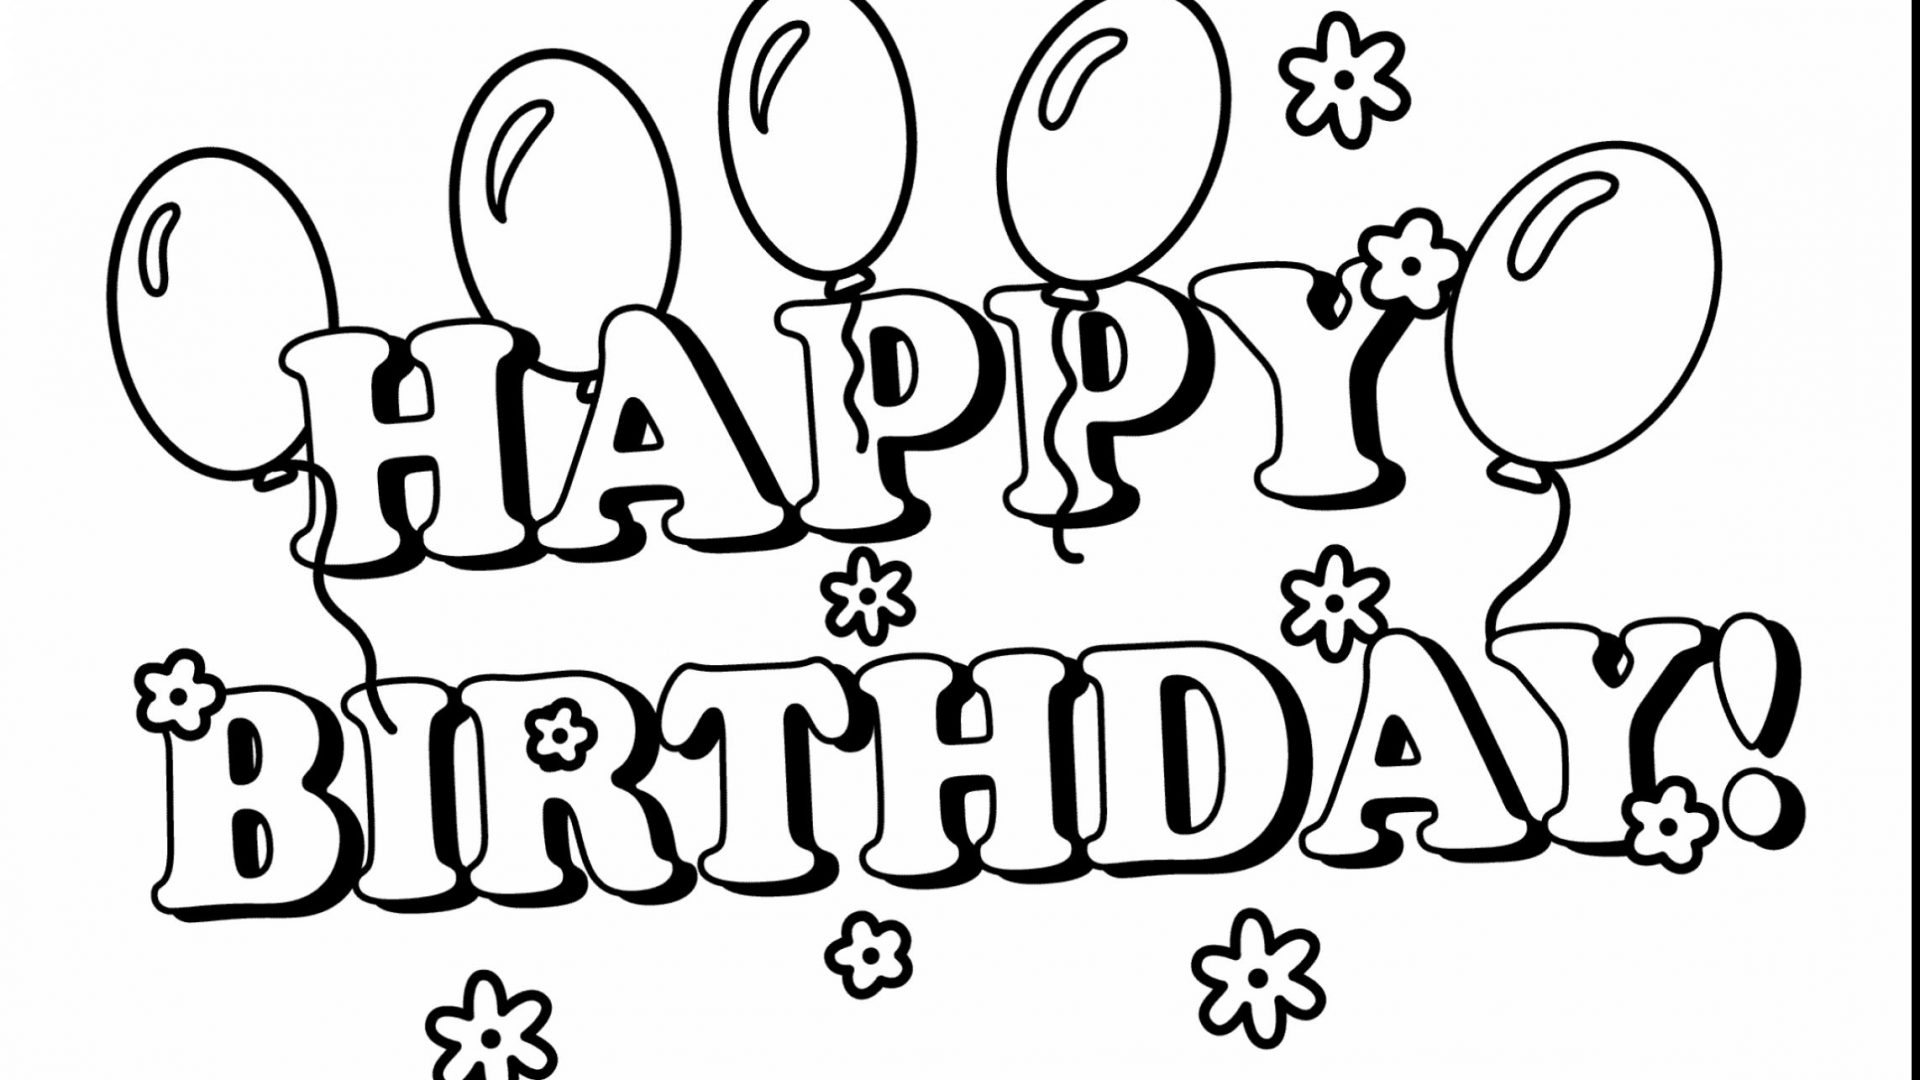 birthday coloring pages for kids ; great-happy-birthday-cake-printable-coloring-pages-1920x1080